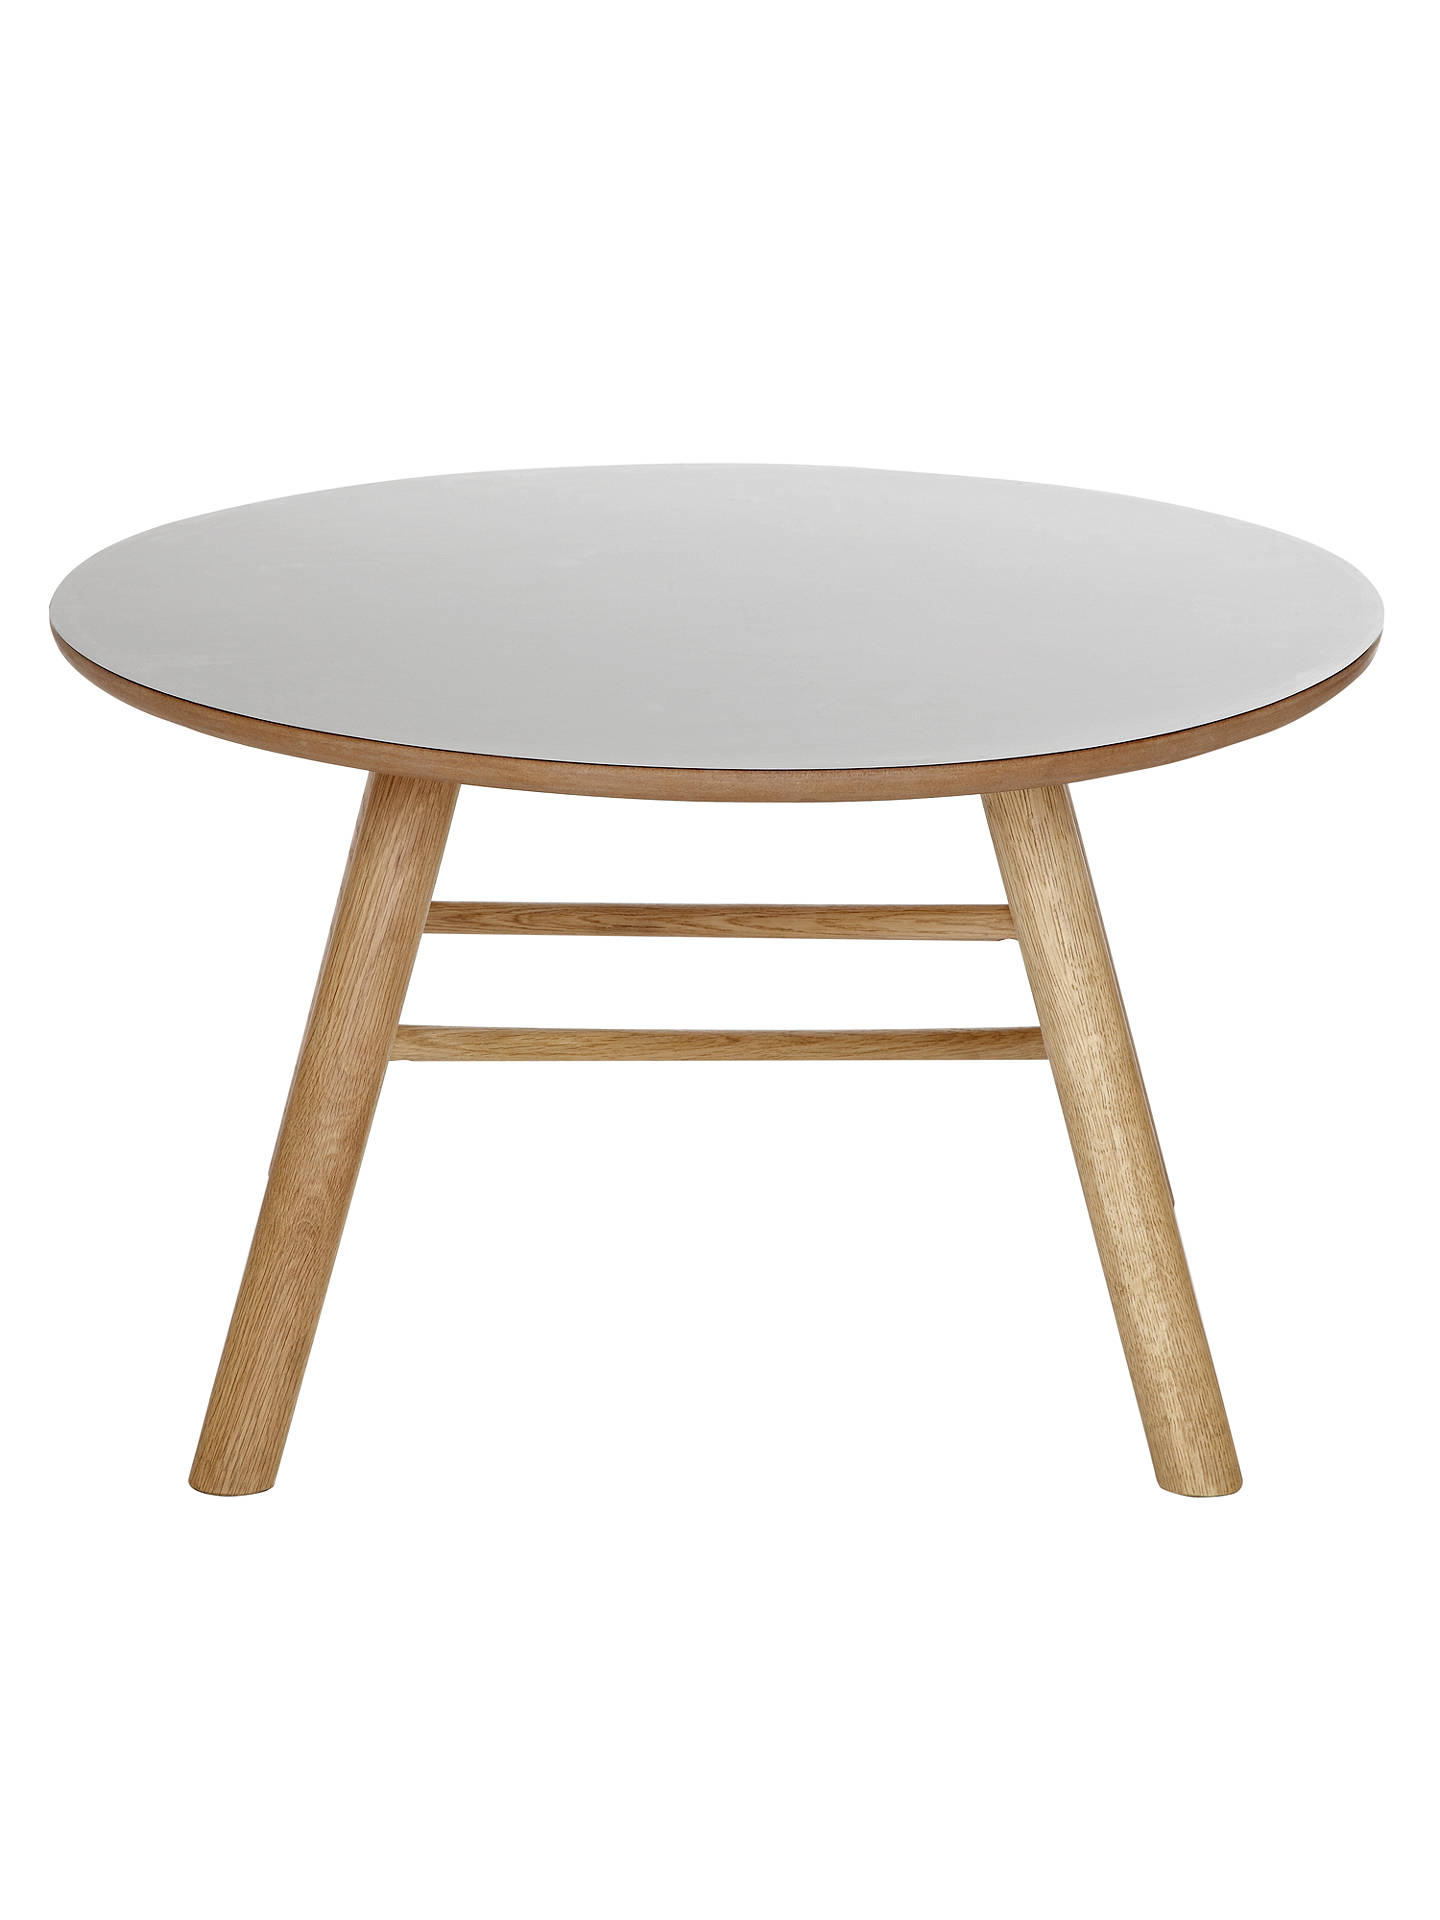 Buy Says Who for John Lewis Why Wood Coffee Table, Grey Online at johnlewis.com